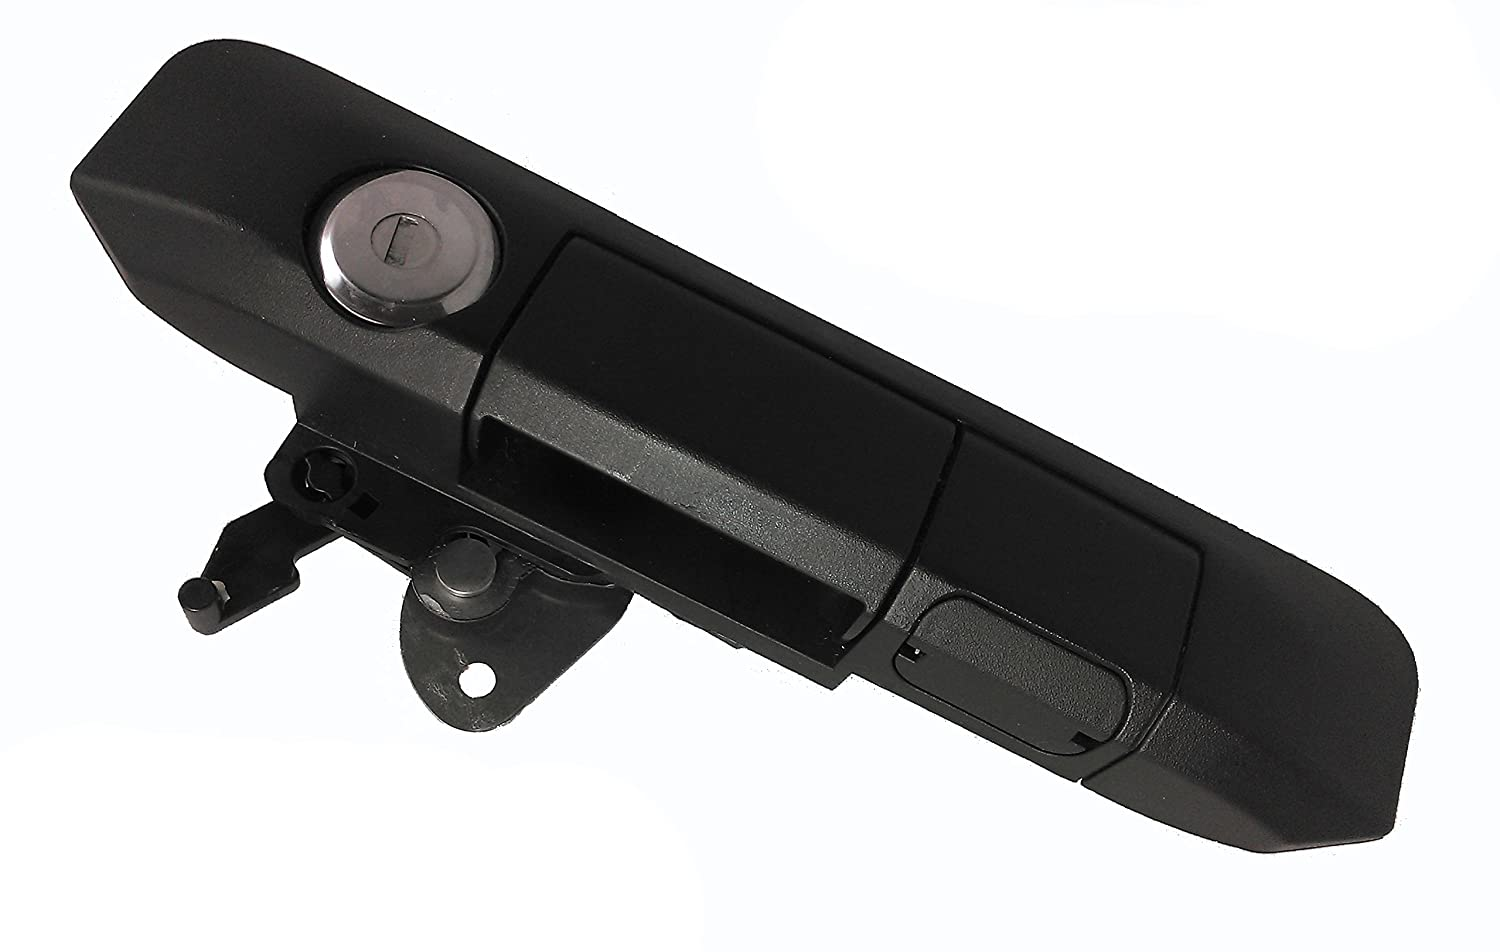 Pop & Lock PL5400 Black Manual Tailgate Lock with BOLT Codeable Technology for Toyota Tacoma